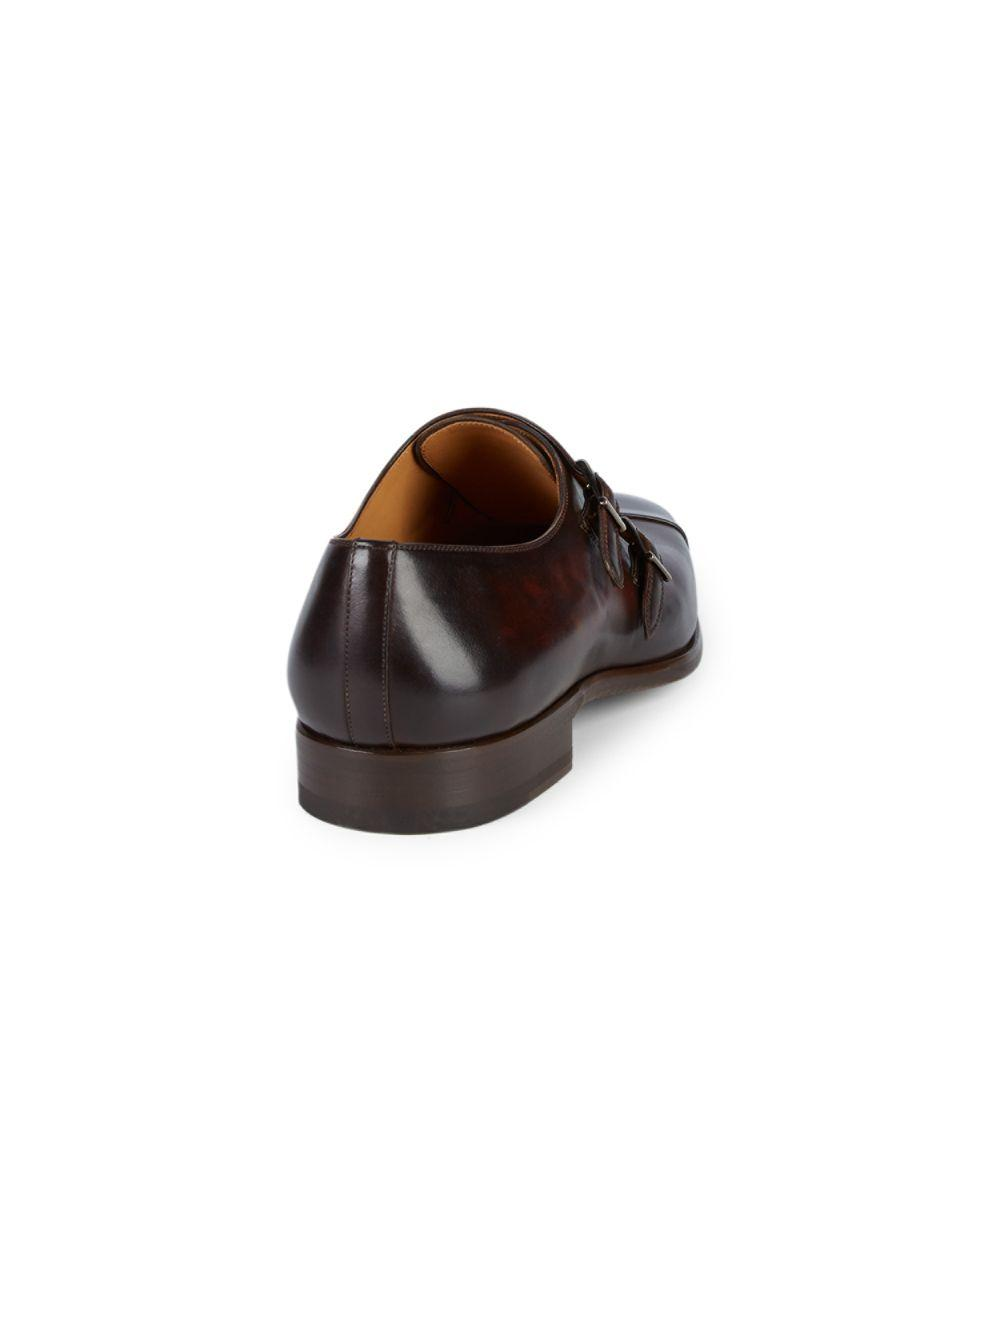 7e7200dbcc0 ... Brown Hafiz Double Monk-strap Leather Dress Shoes for Men - Lyst. View  fullscreen